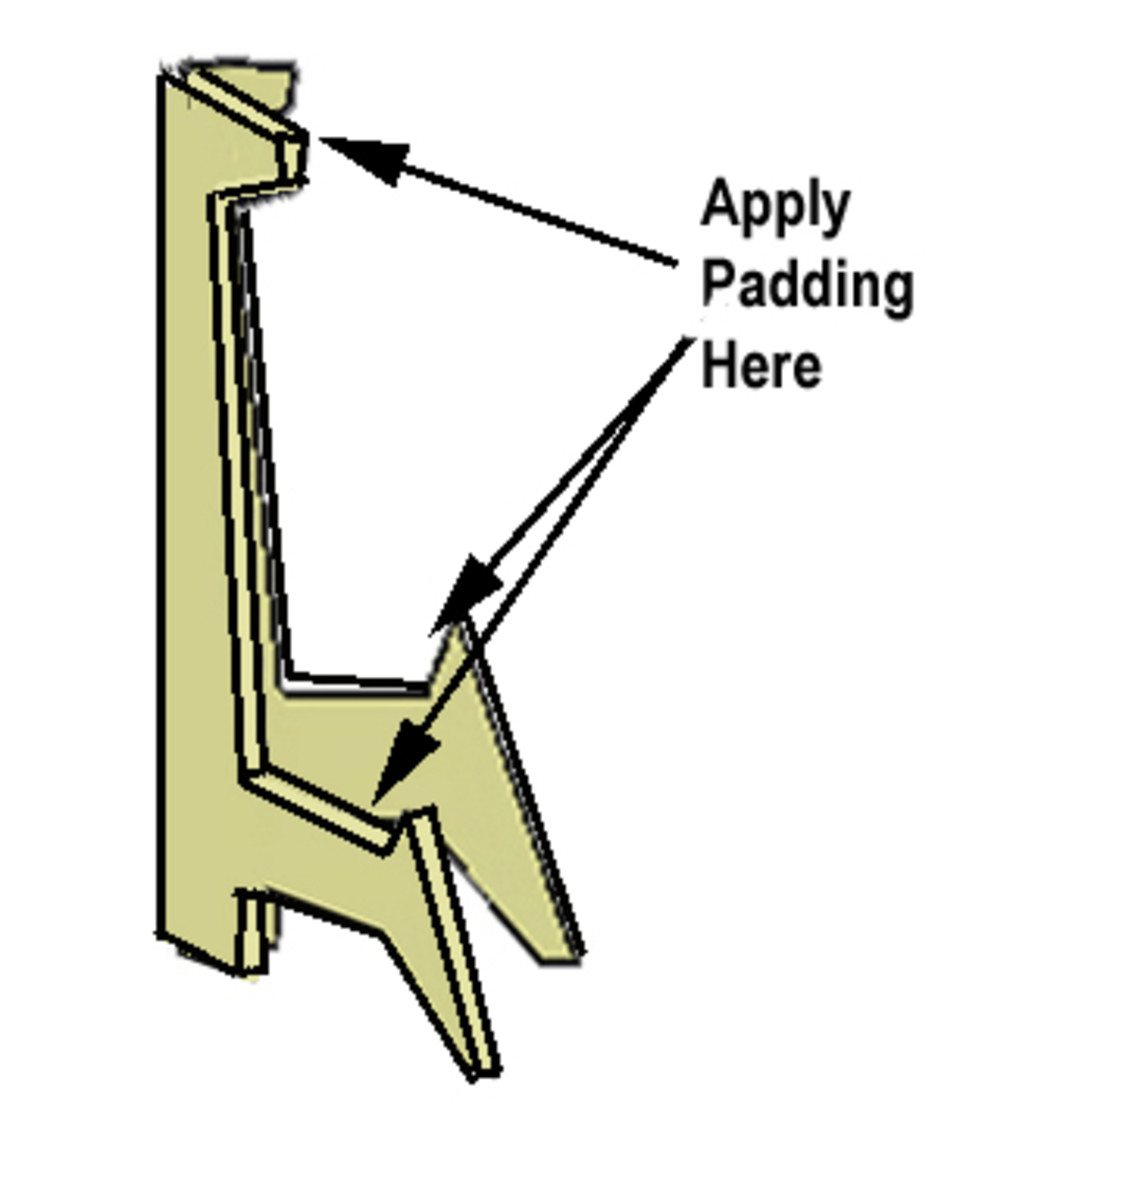 Use felt or foam to pad the head rest and saddle of the stand.